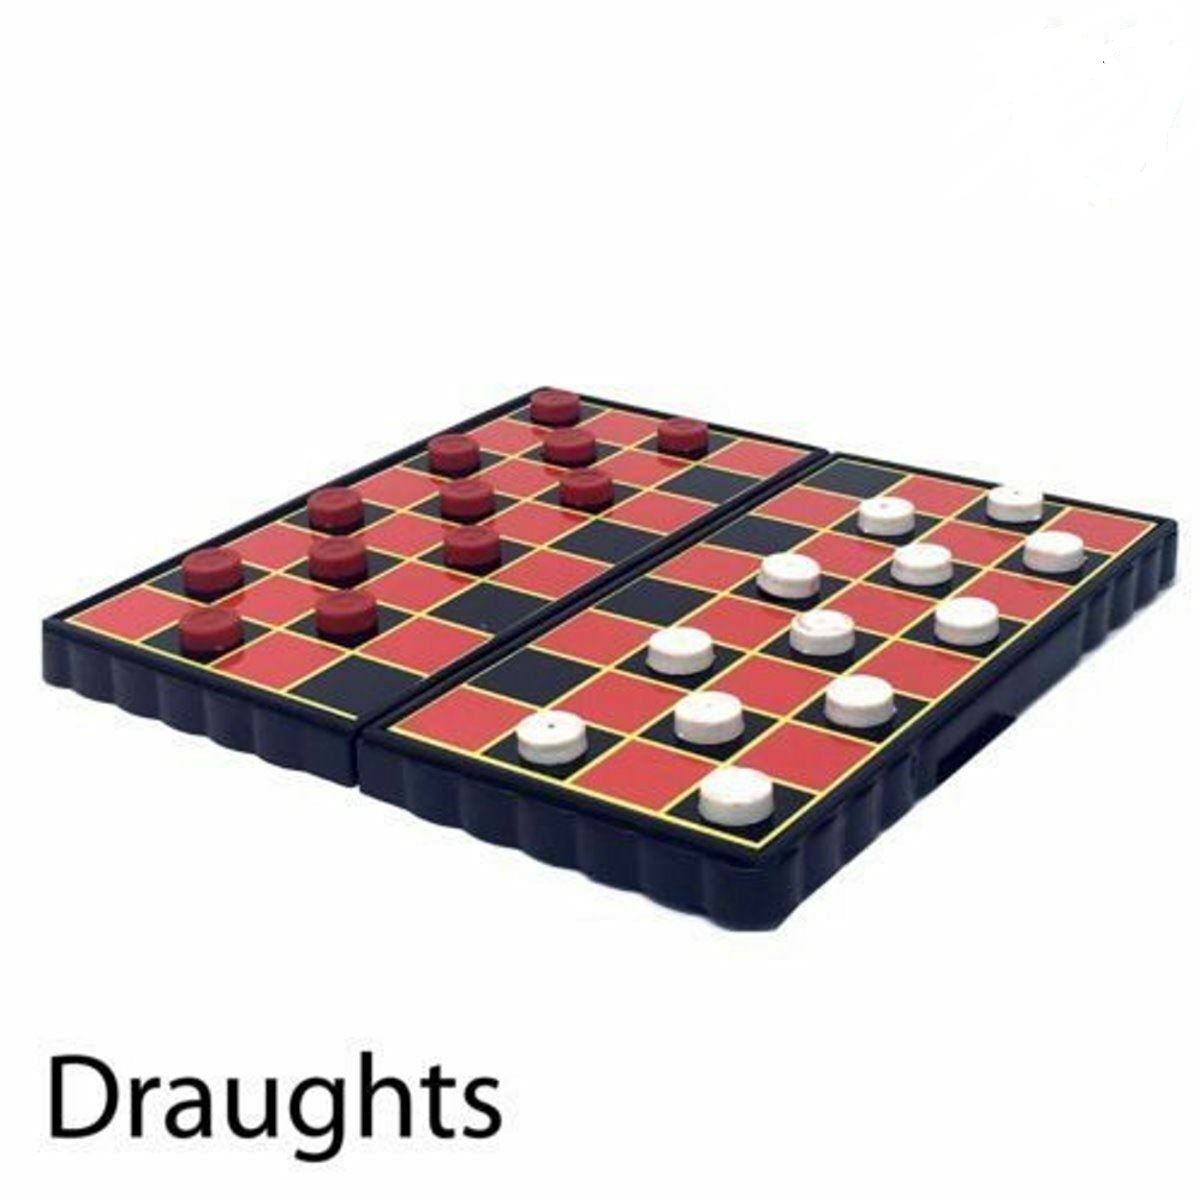 Magnetic Travel Board Games set of 4 - snakes & ladders, ludo, chess, draught 3